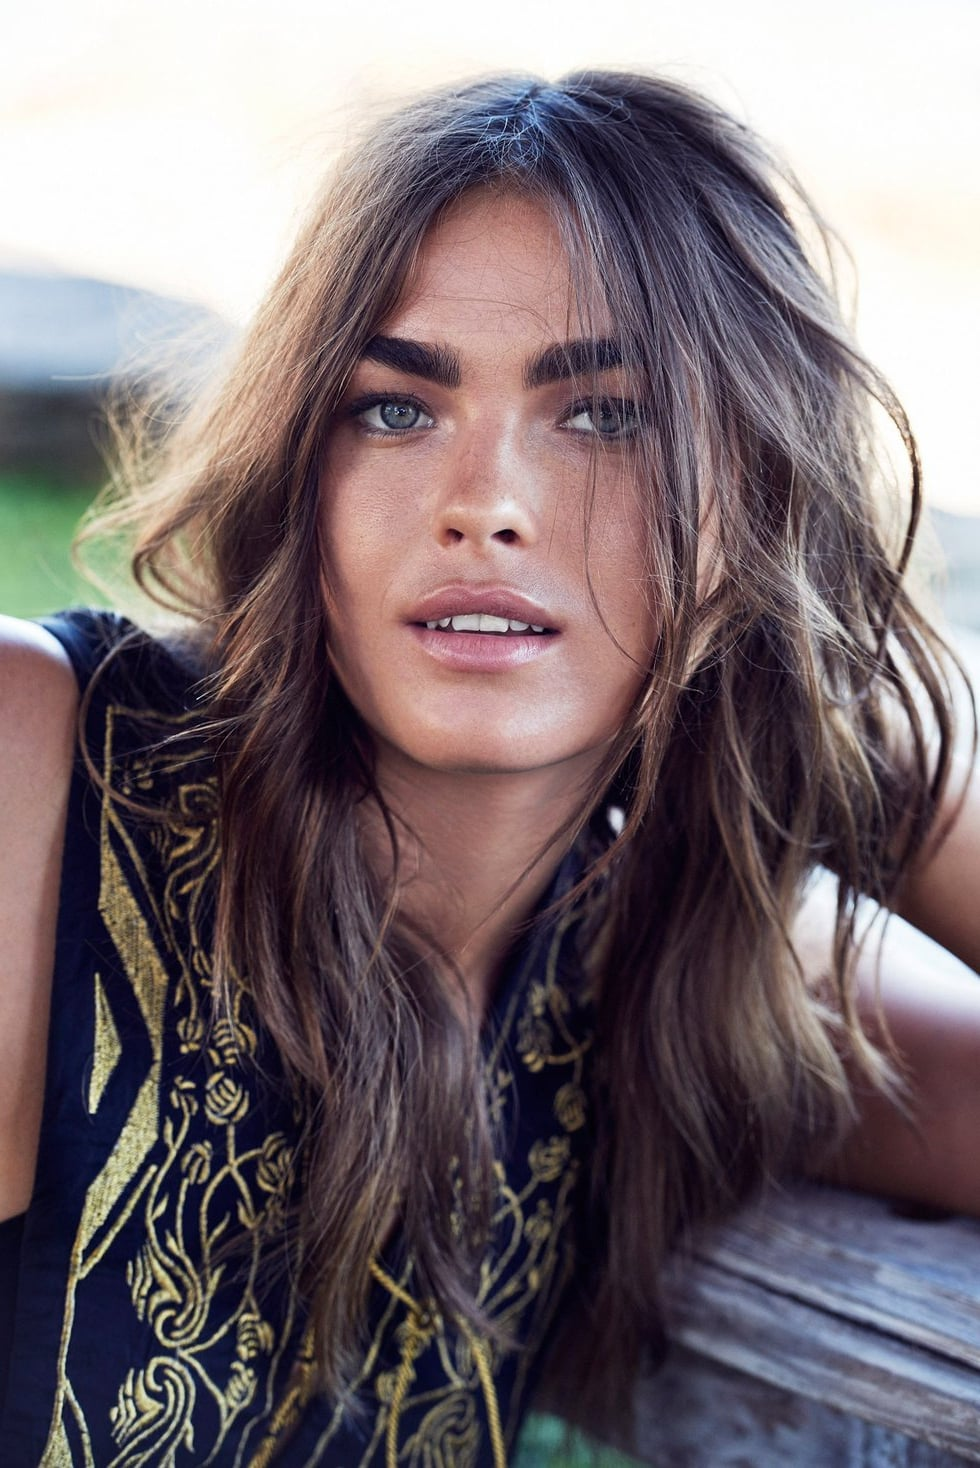 Hd wallpaper anime - Bambi Northwood Blyth Hd Wallpapers Free Donwload